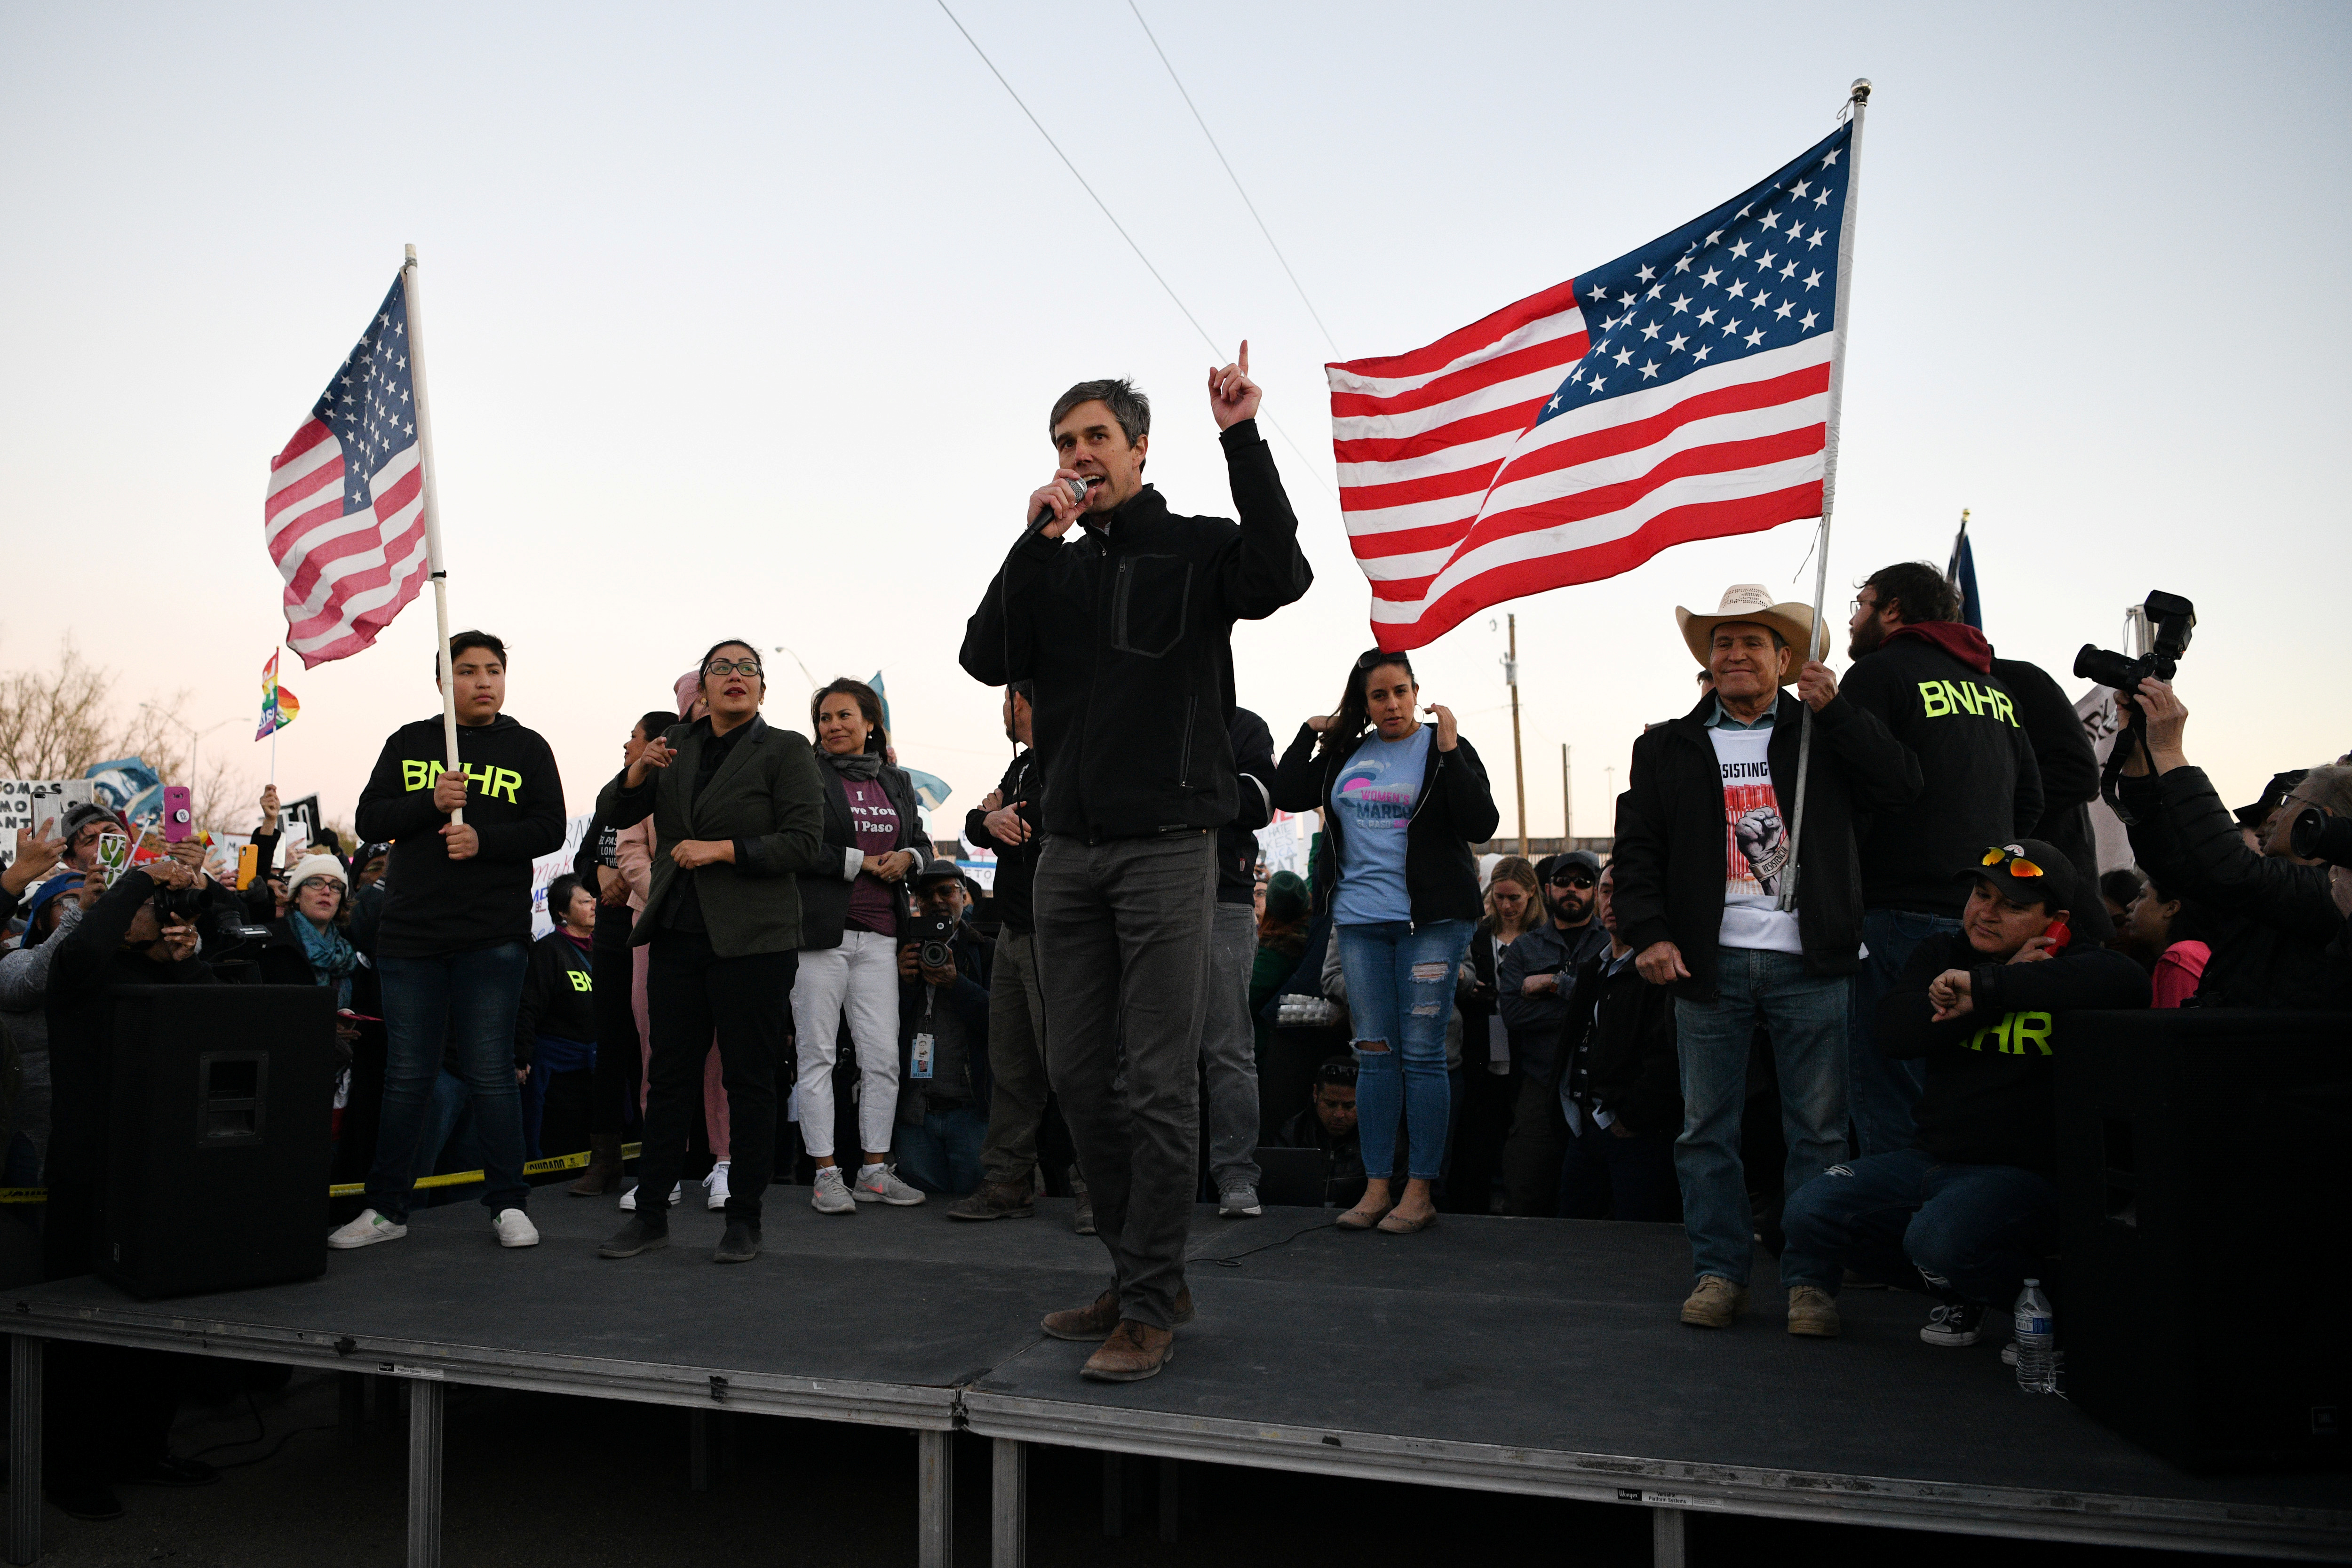 Beto O'Rourke, the Democratic former Texas congressman, addresses supporters before an anti-Trump march in El Paso, Texas, U.S.